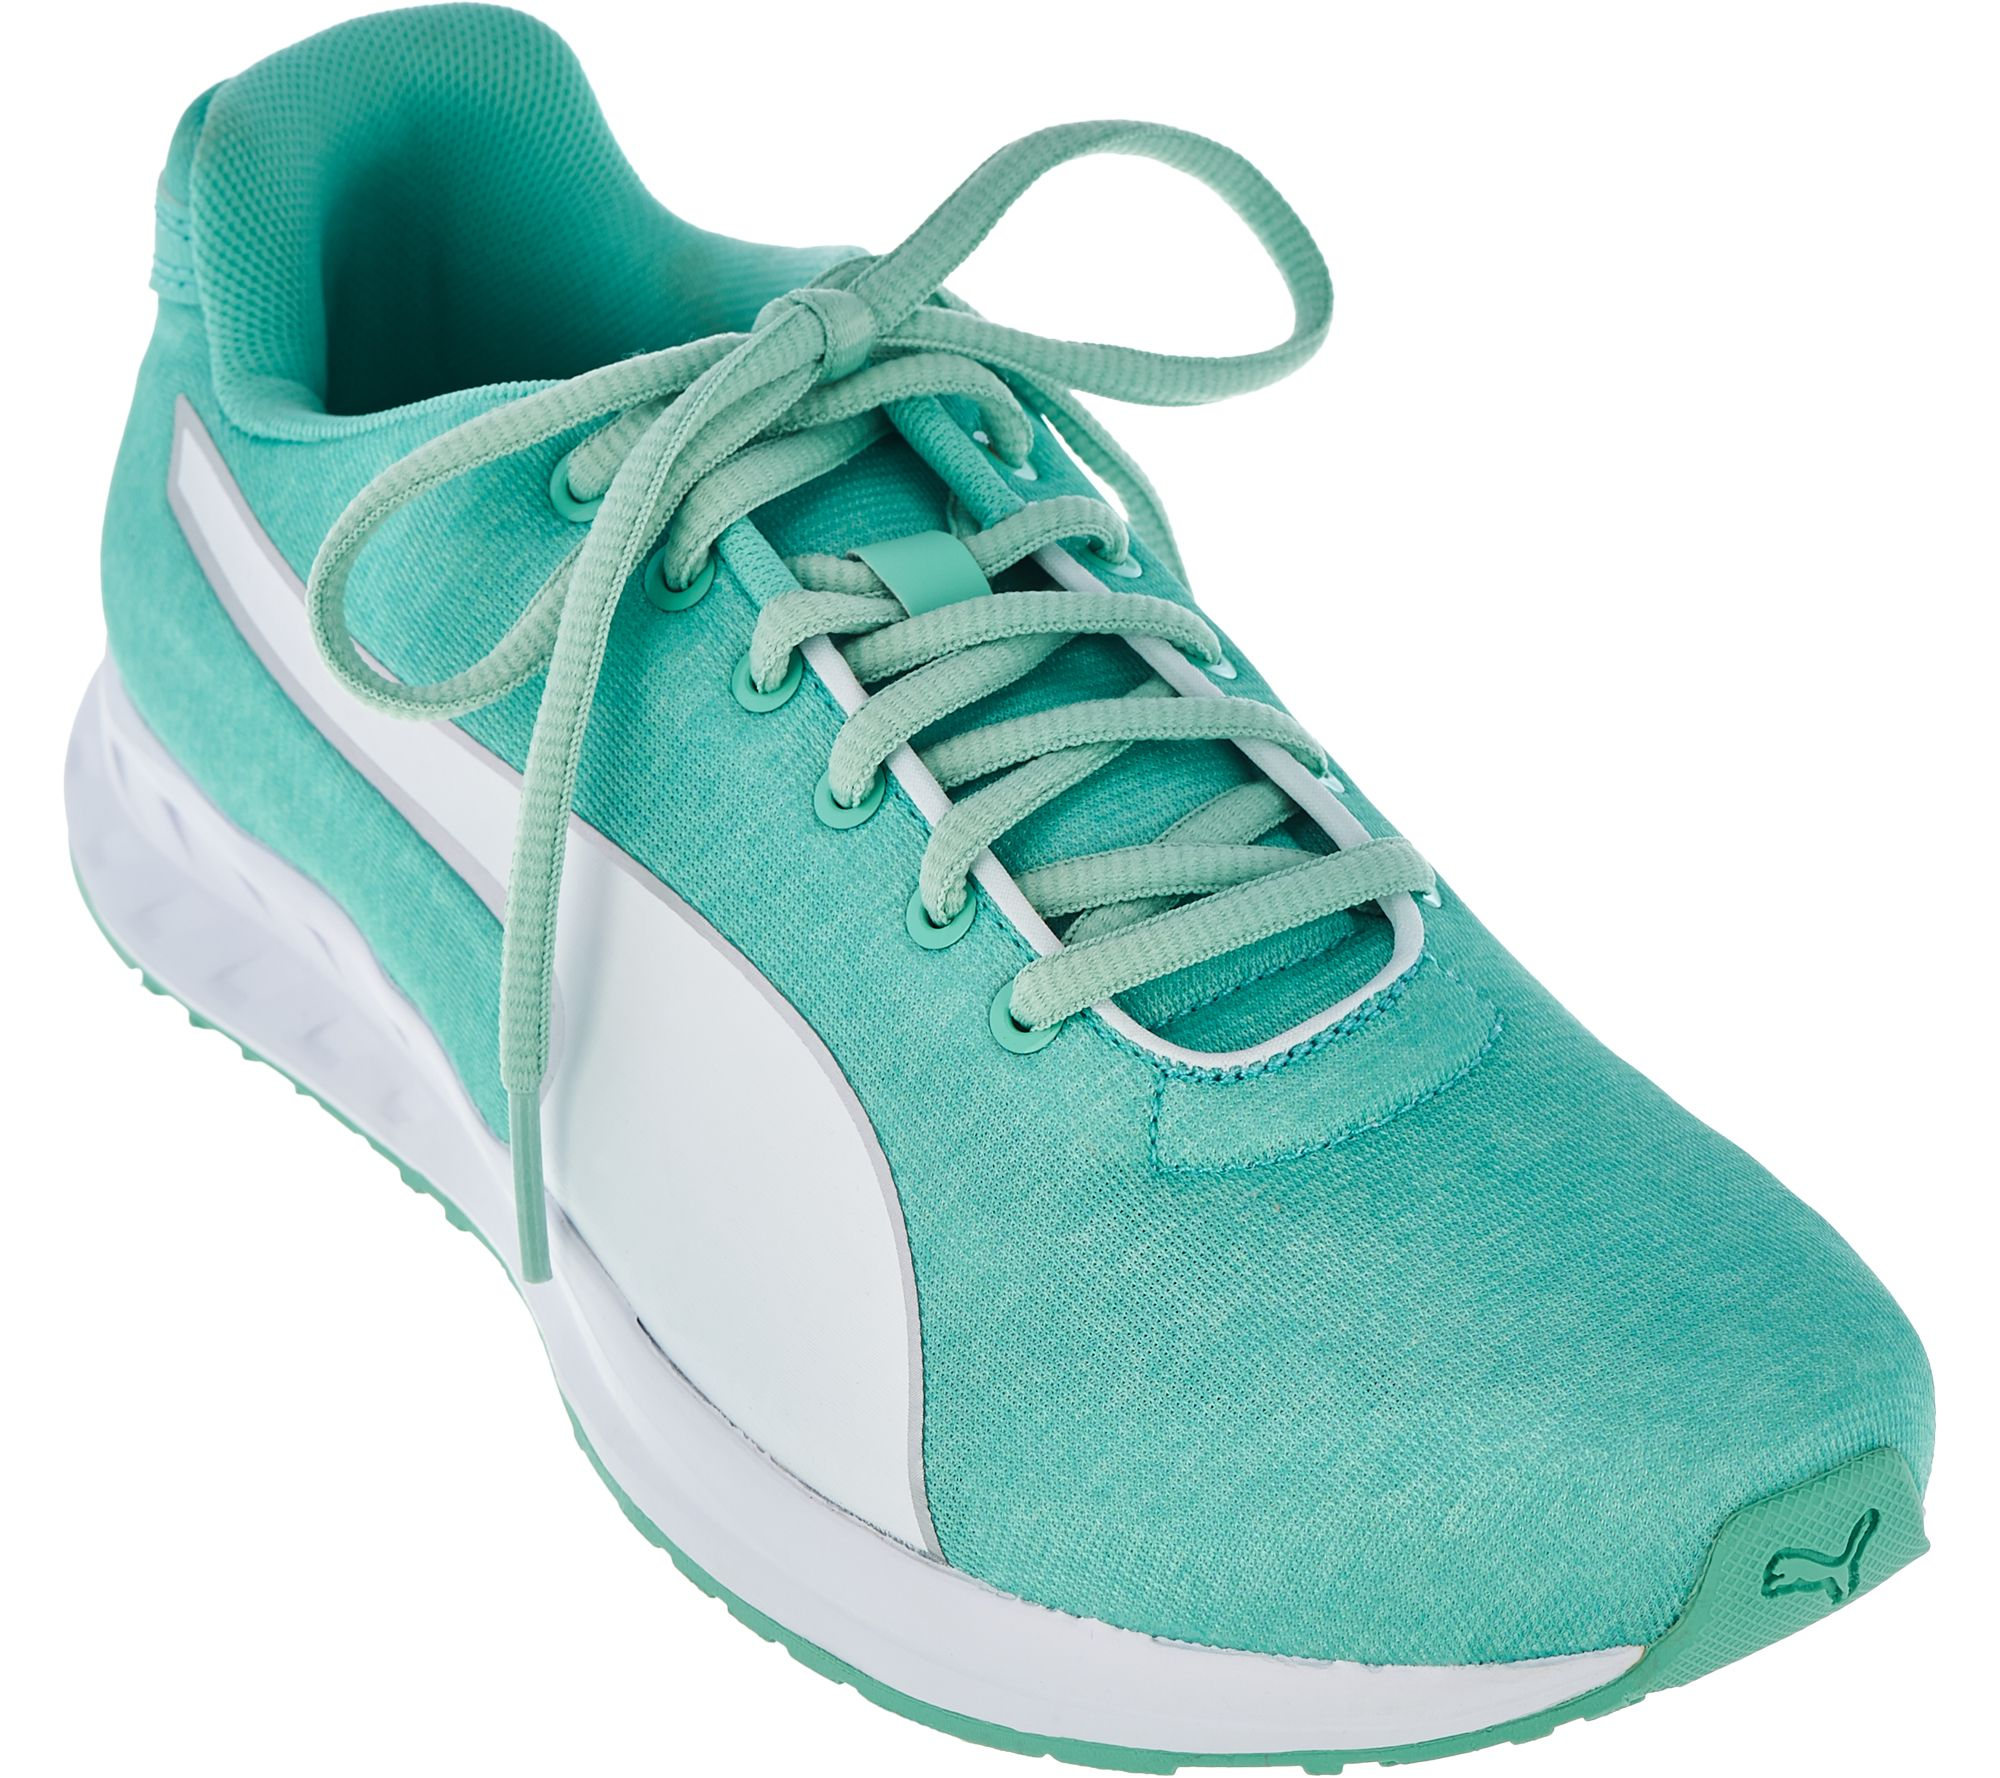 PUMA Heathered Jersey Lace-up Sneakers - Burst shopping online original tumblr cheap price o6cC4kUY7